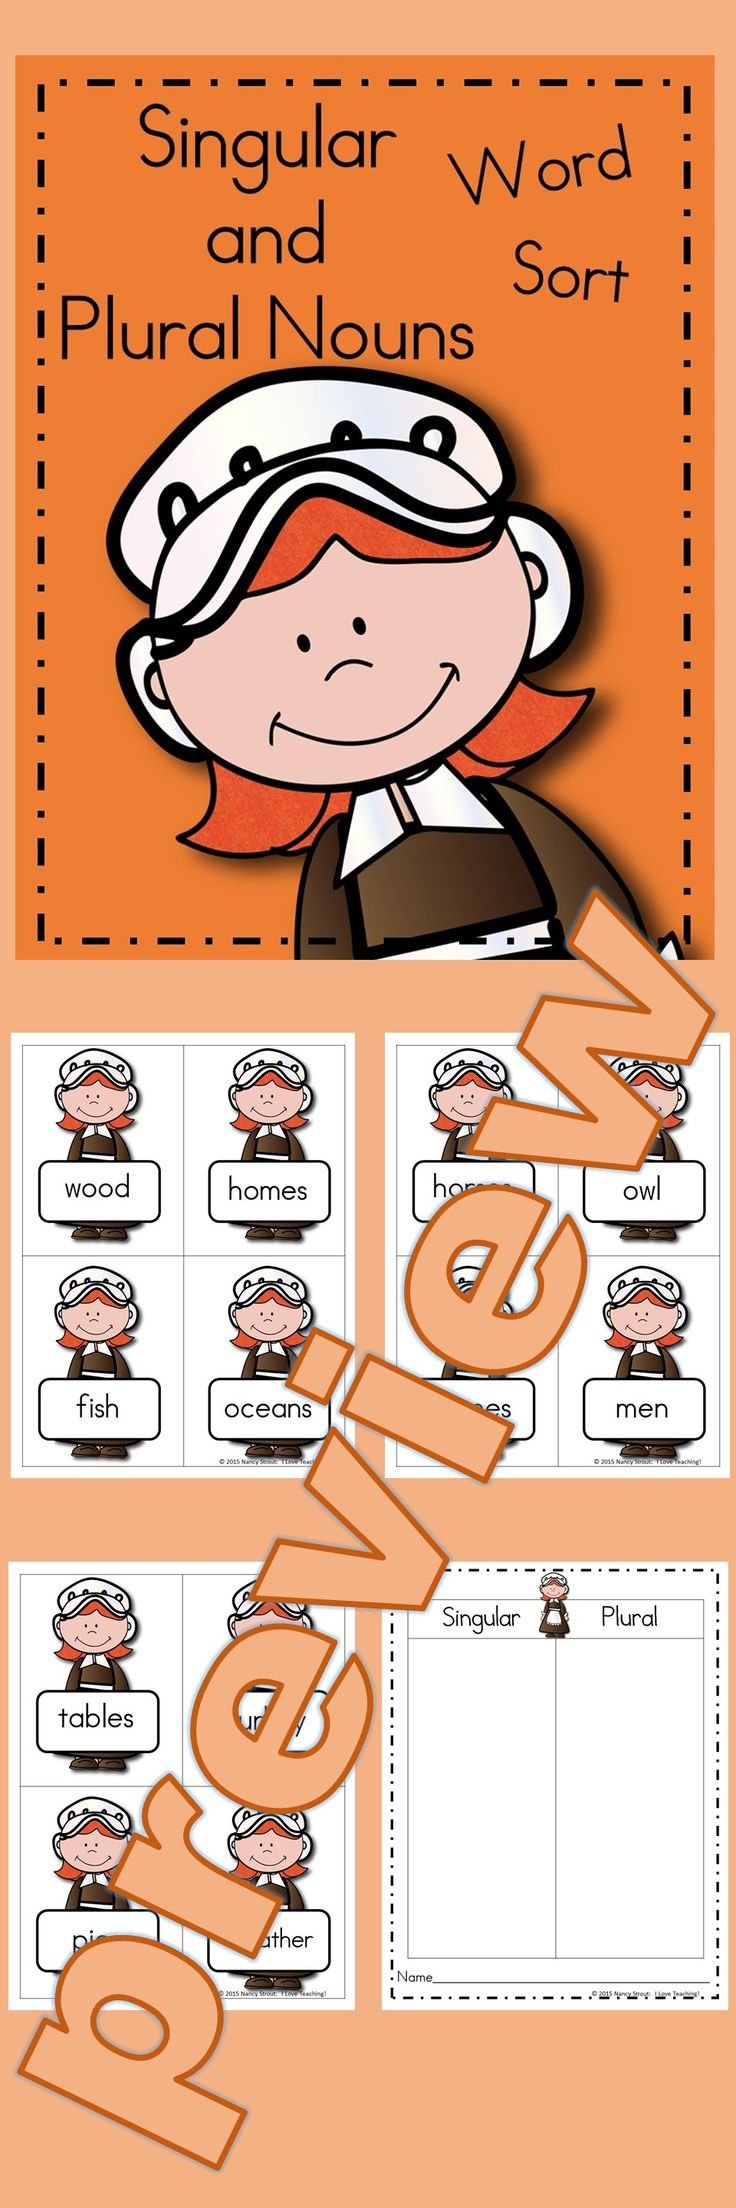 Singular and Plural Nouns Word Sort: Looking for a fun activity for the Thanksgiving Season?? This fun singular and plural nouns word sort is just what you need! I have included 24 singular and plural nouns that your students can sort. Once they are sorted, students write them down in the proper column on their response sheet. This word sort is in color as well as, black and white. You can use this word sort in a center, for early finishers, or to play scoot.